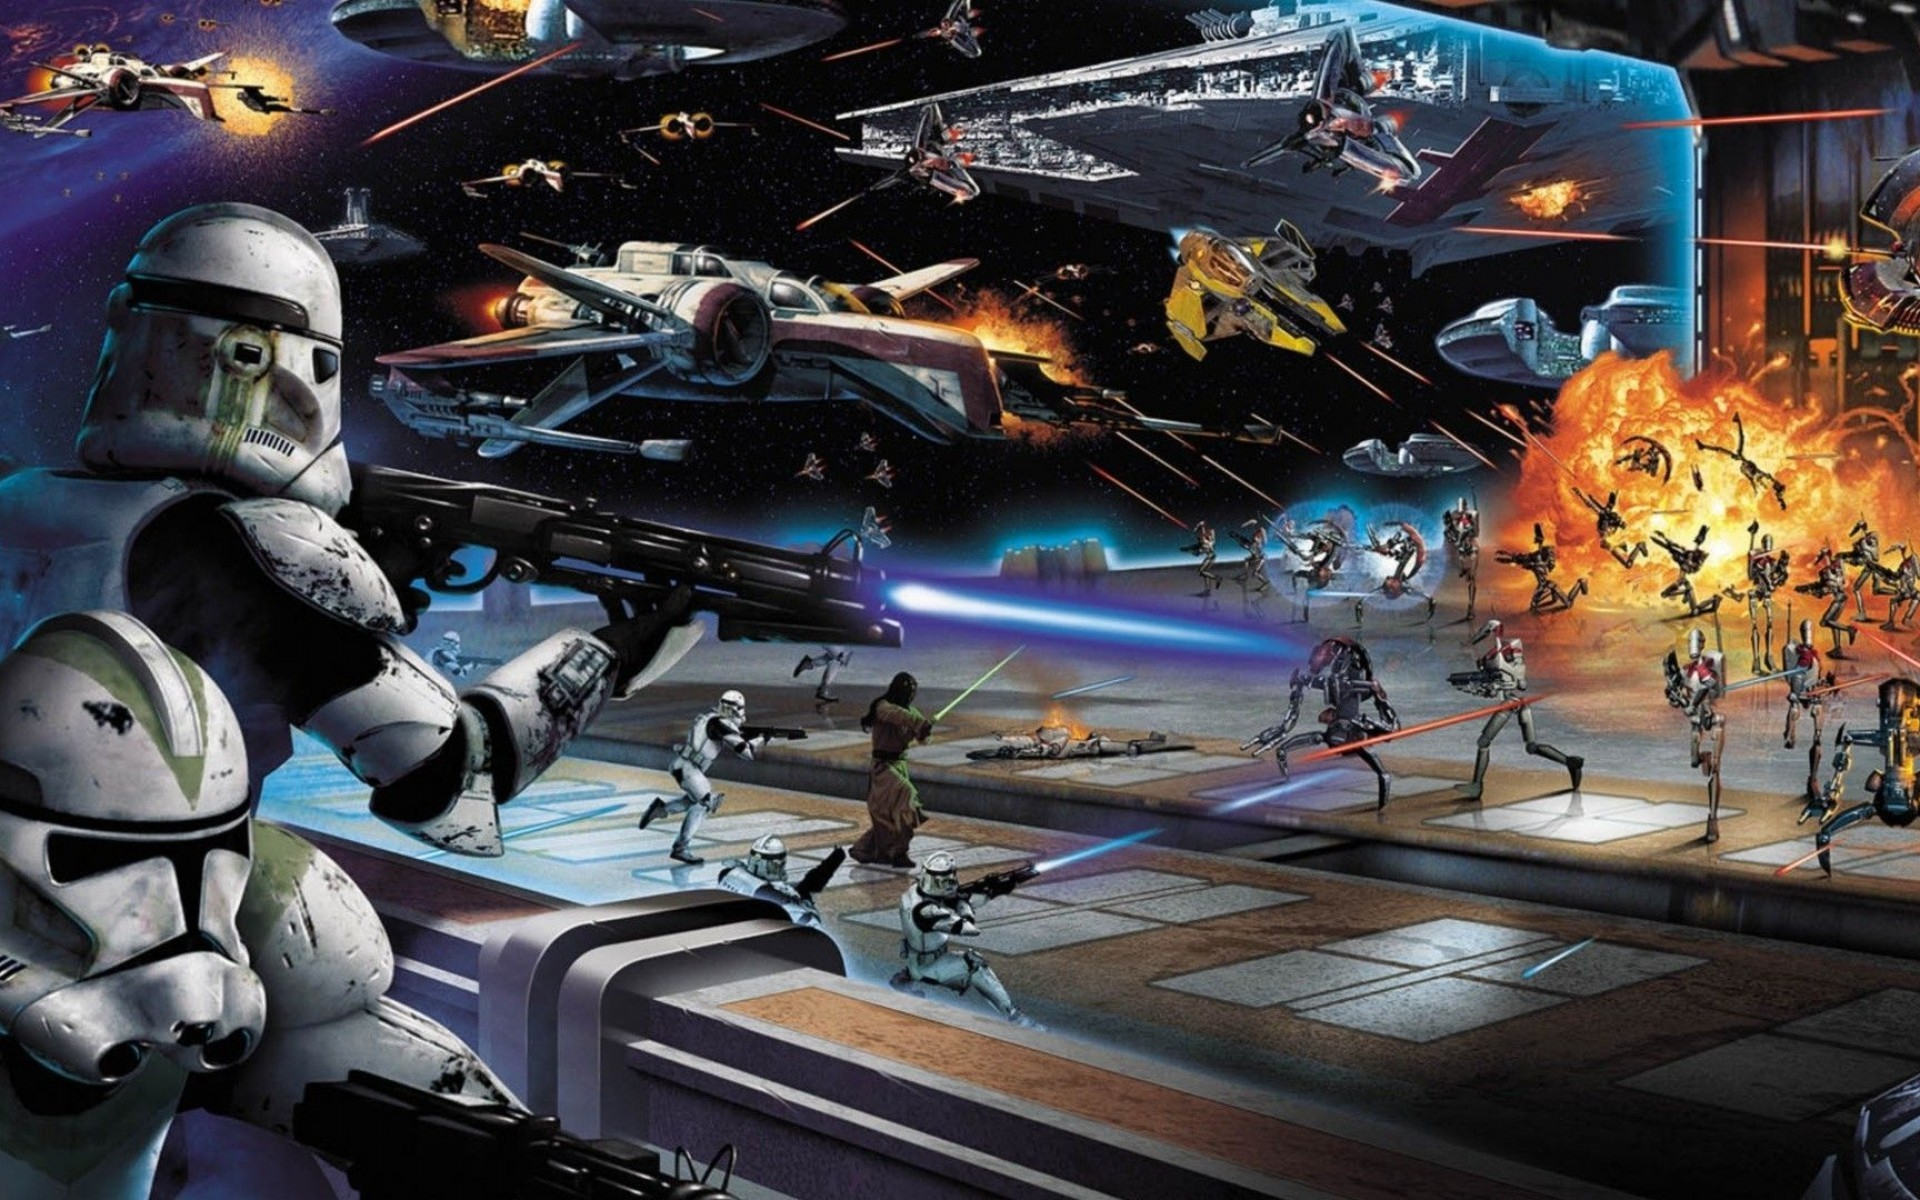 118 Star Wars Space Battle